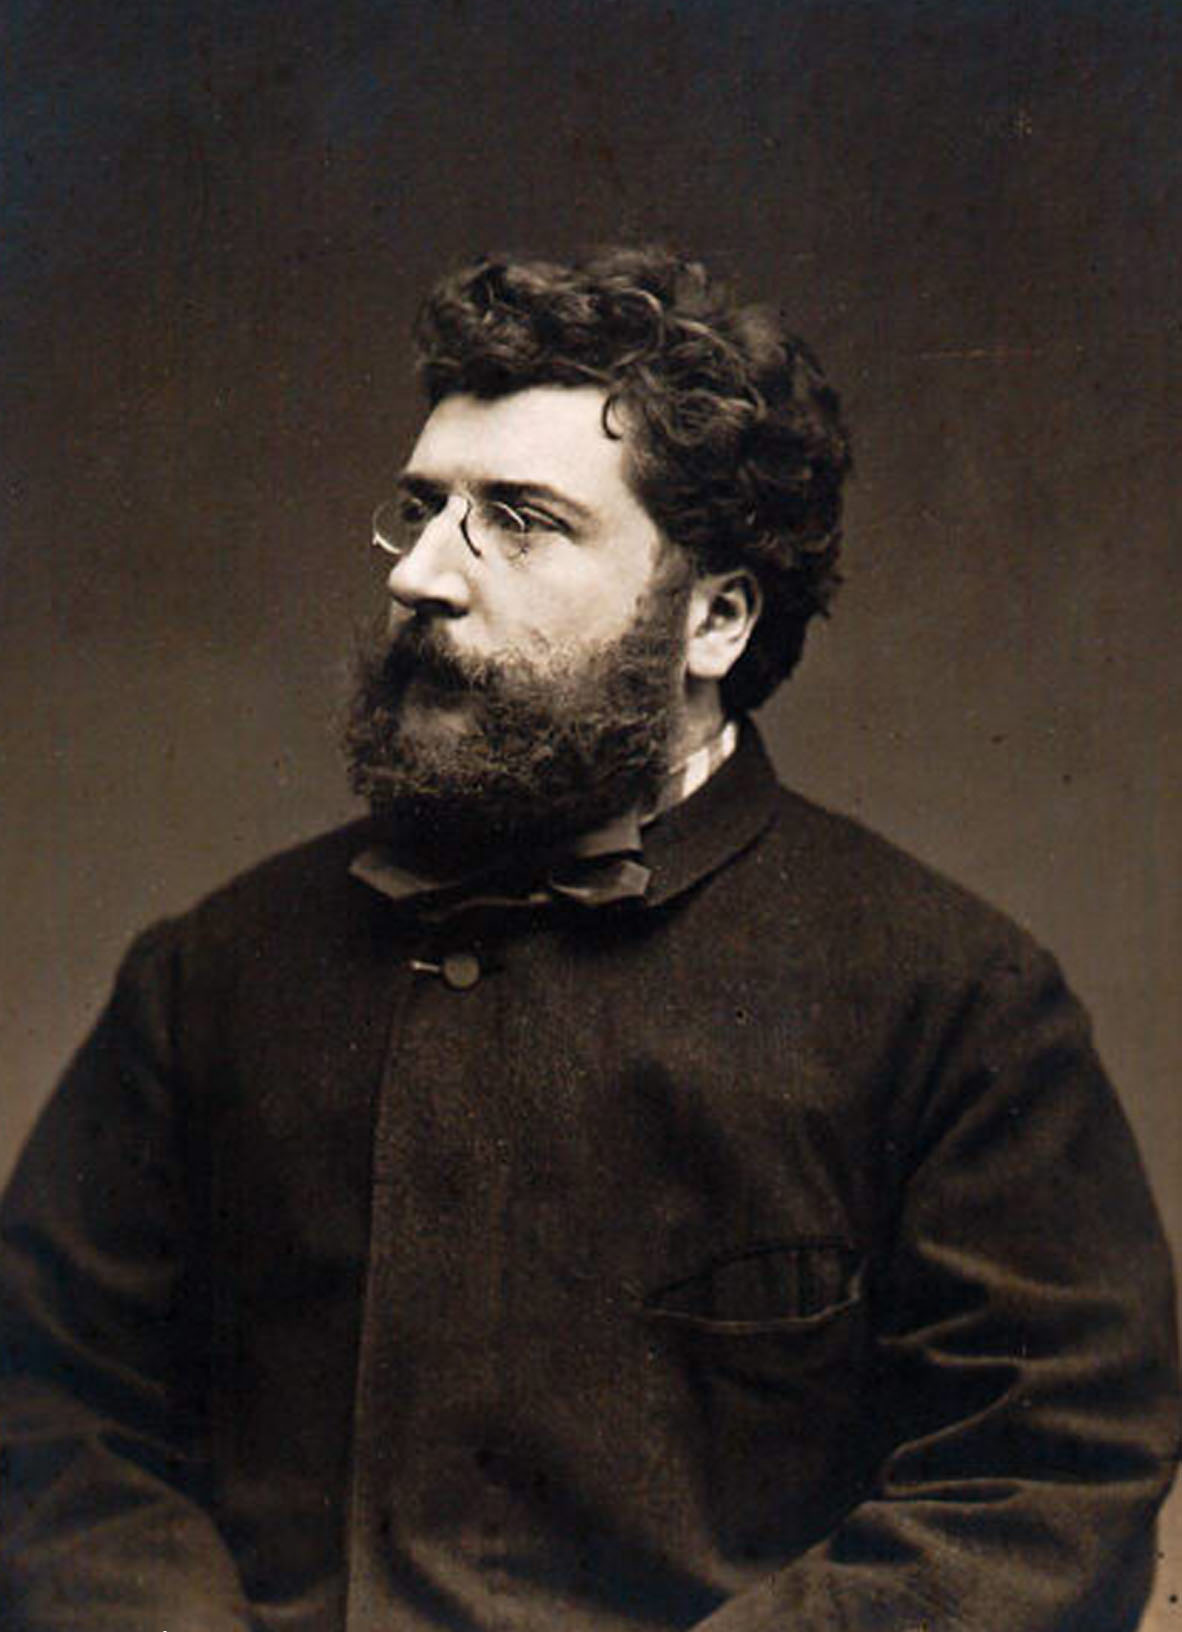 Georges Bizet, photograph by Étienne Carjat, 1875